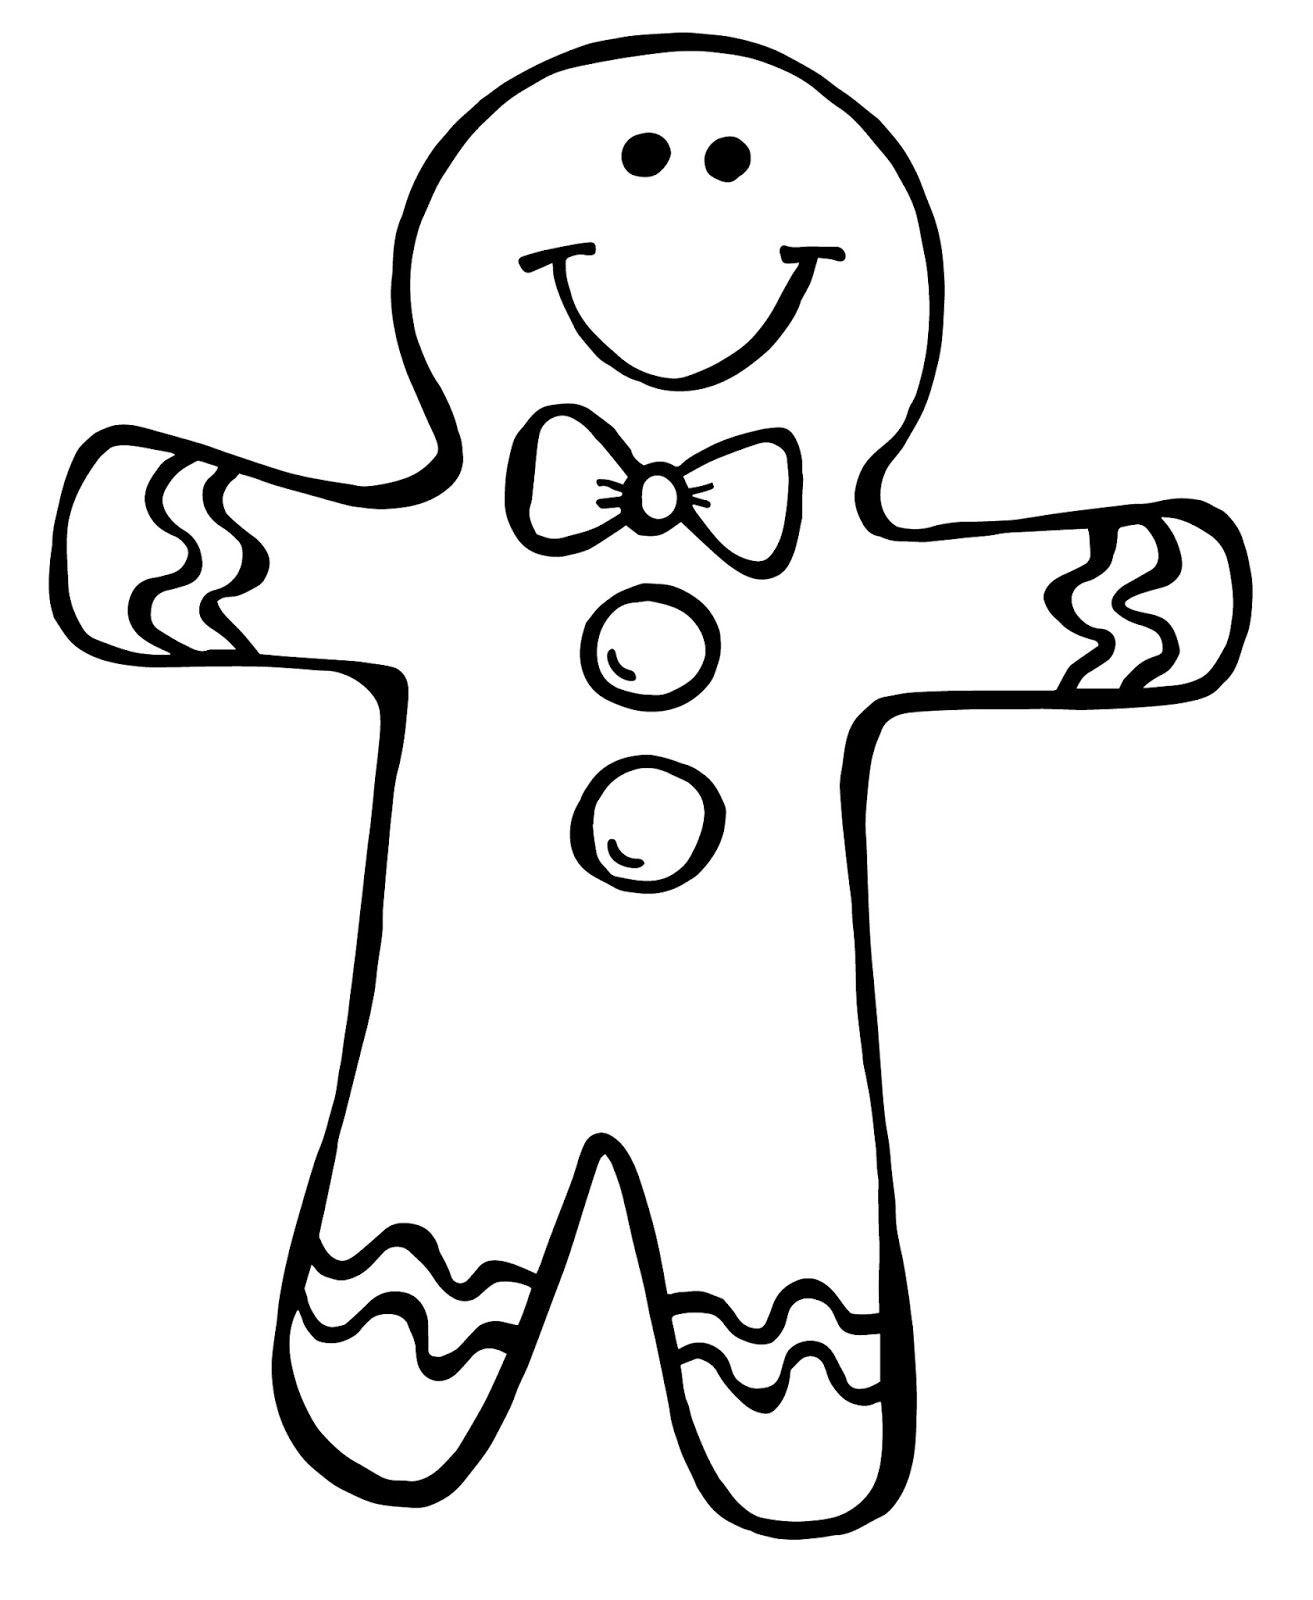 free gingerbread boy girl clipart december pinterest girl rh pinterest ca  gingerbread man clipart black and white